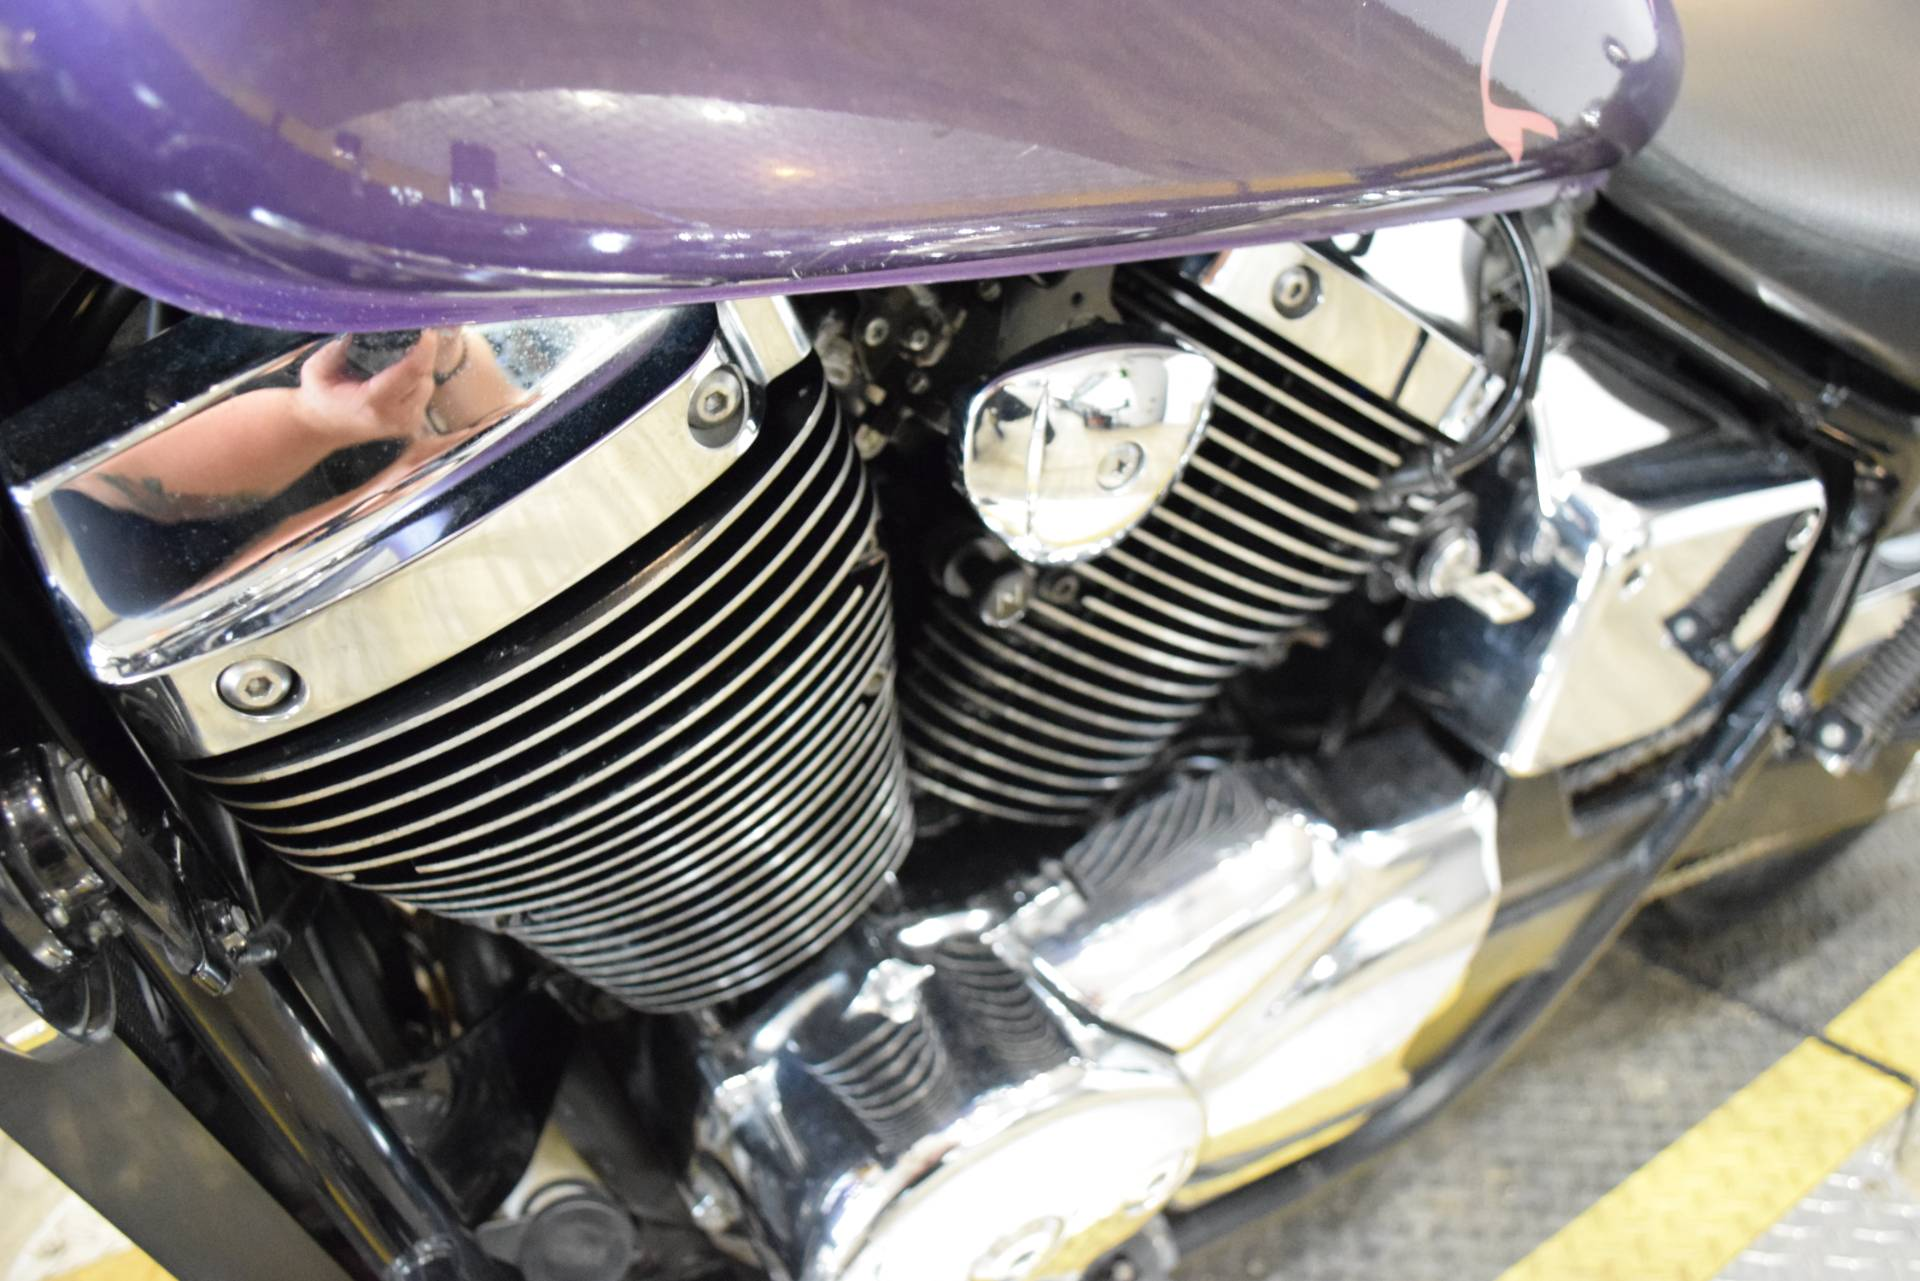 2001 Honda Shadow 750 in Wauconda, Illinois - Photo 19